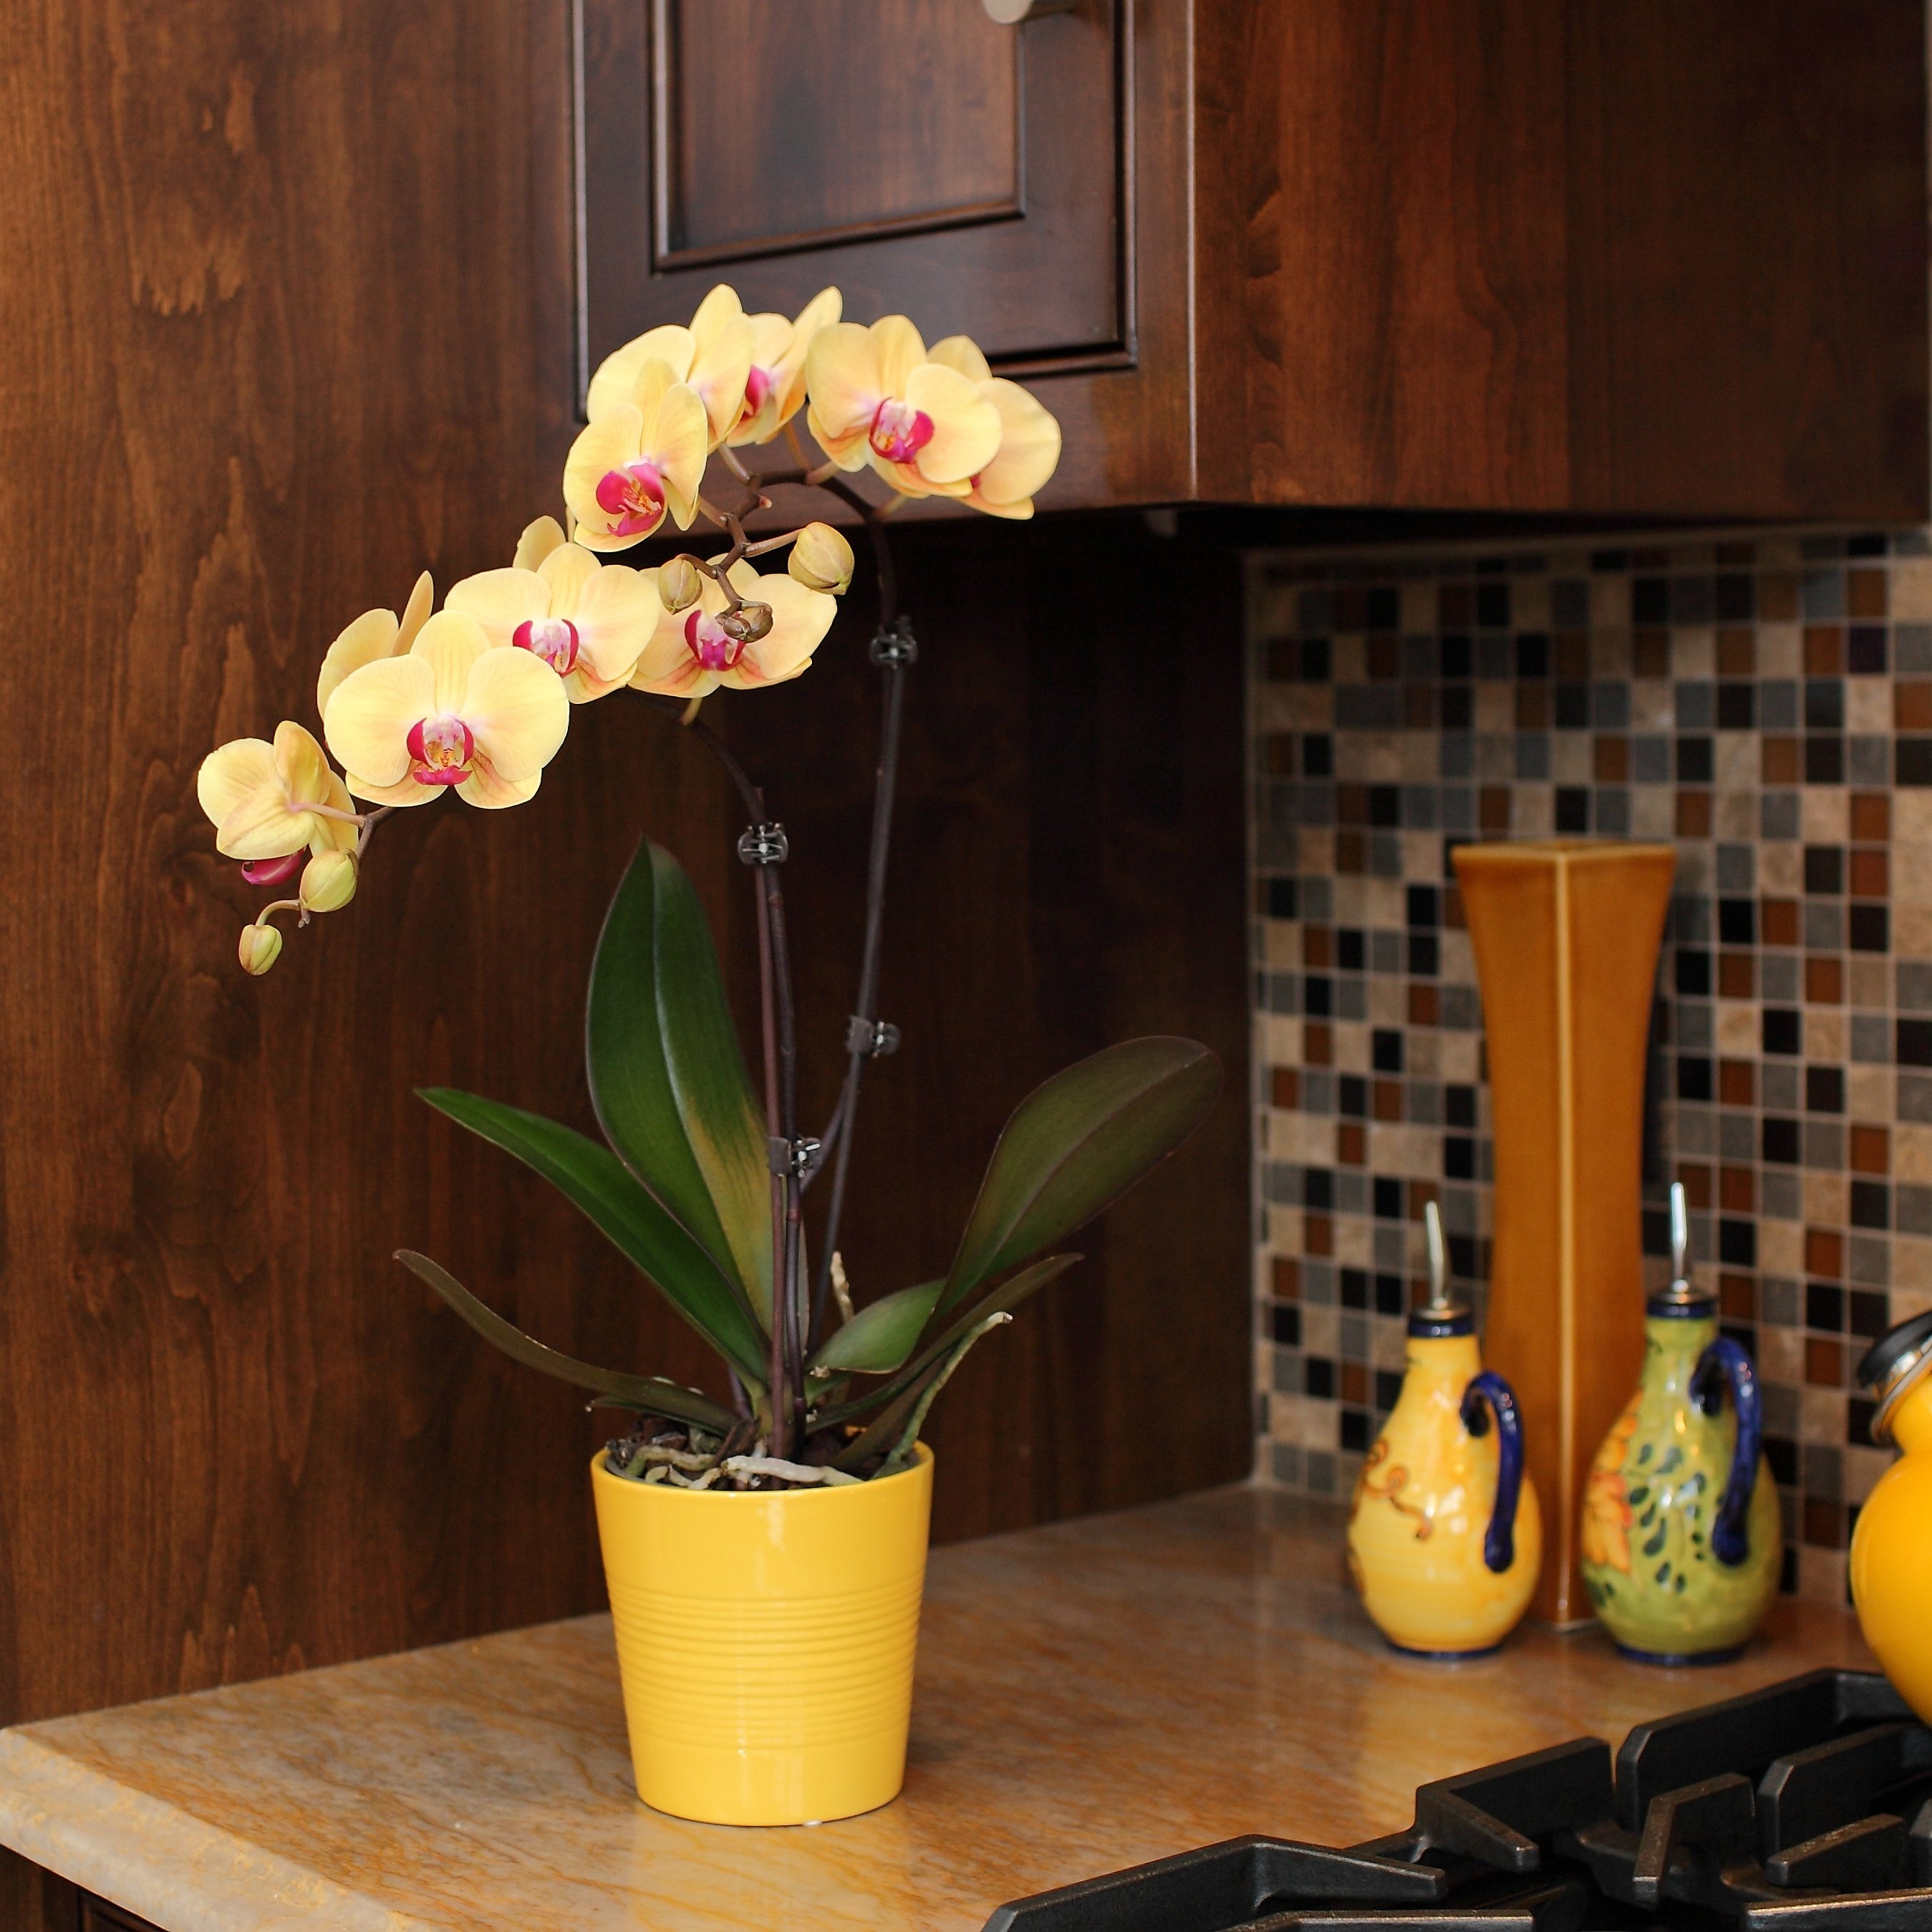 Selling potted indoor plants vs fresh flowers - Indoor potted flowers ...